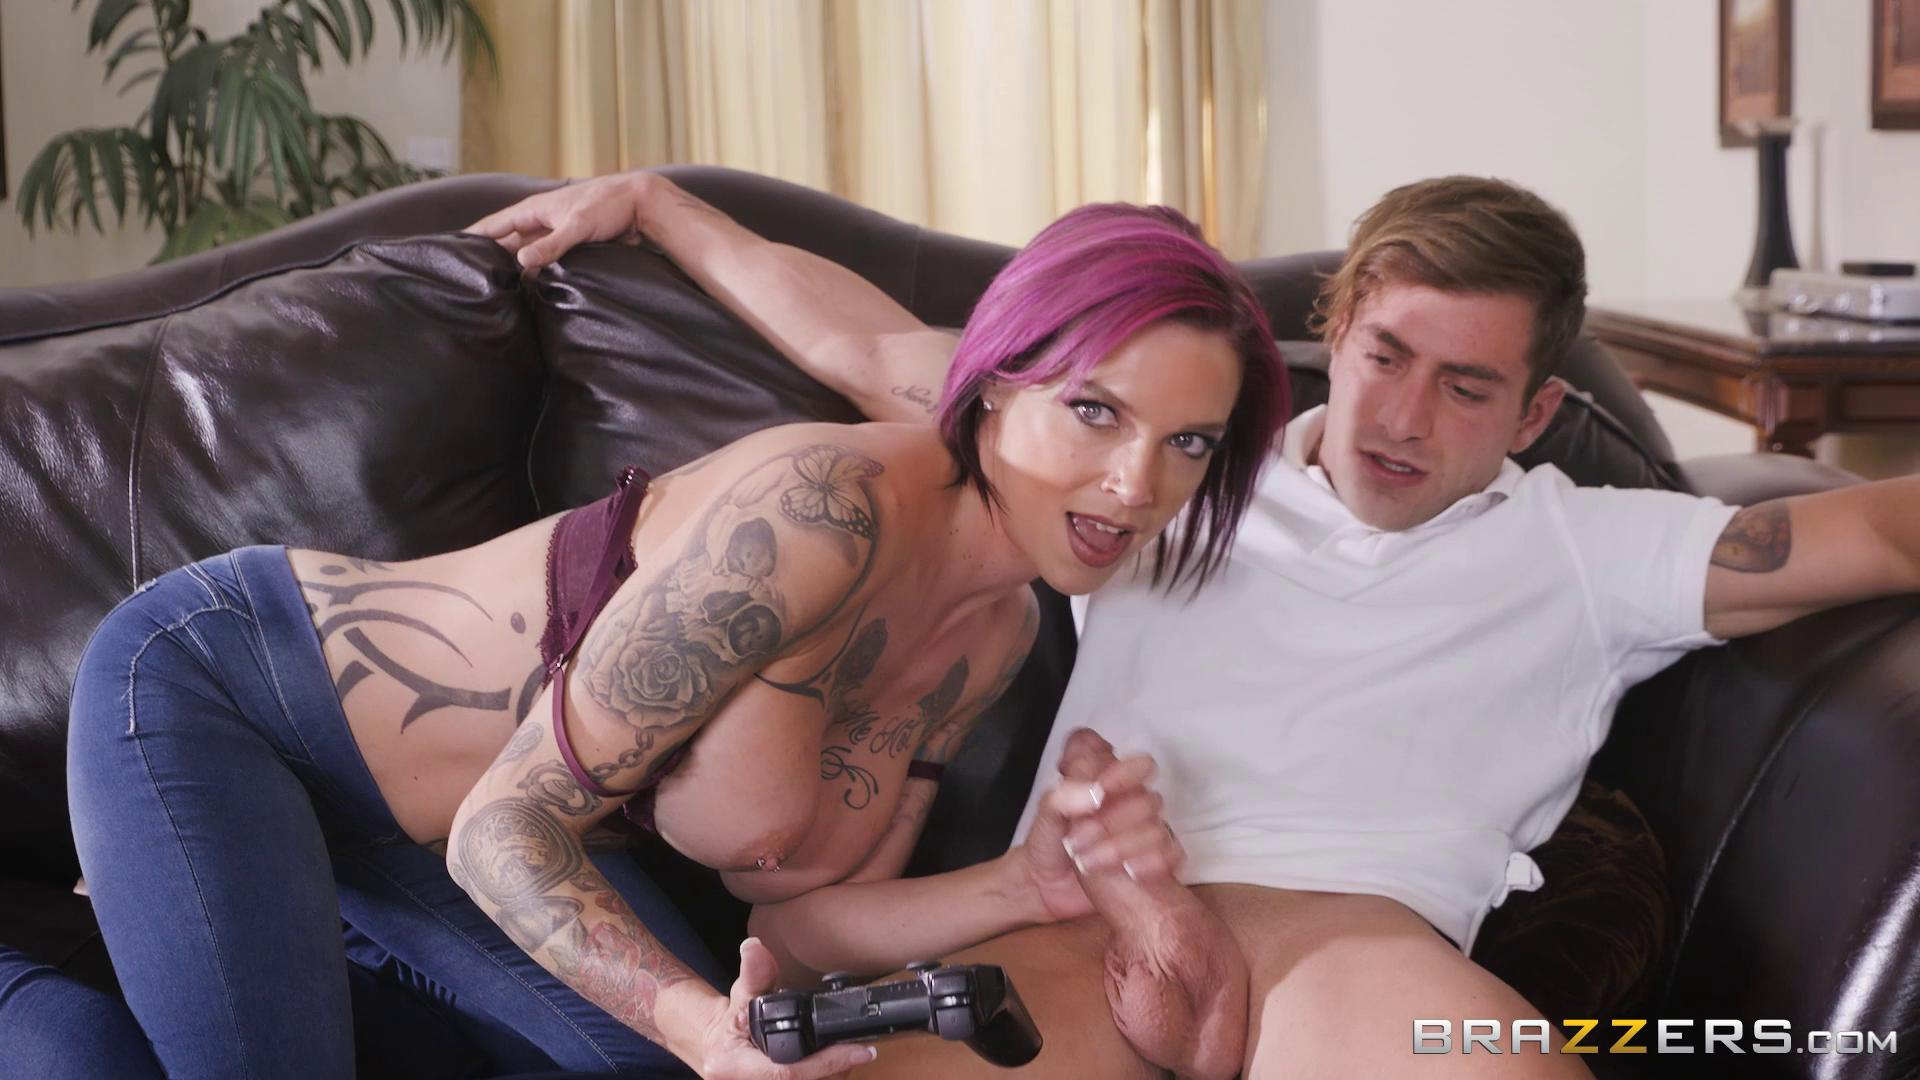 MommyGotBoobs – Anna Bell Peaks Putting Her Feet Up